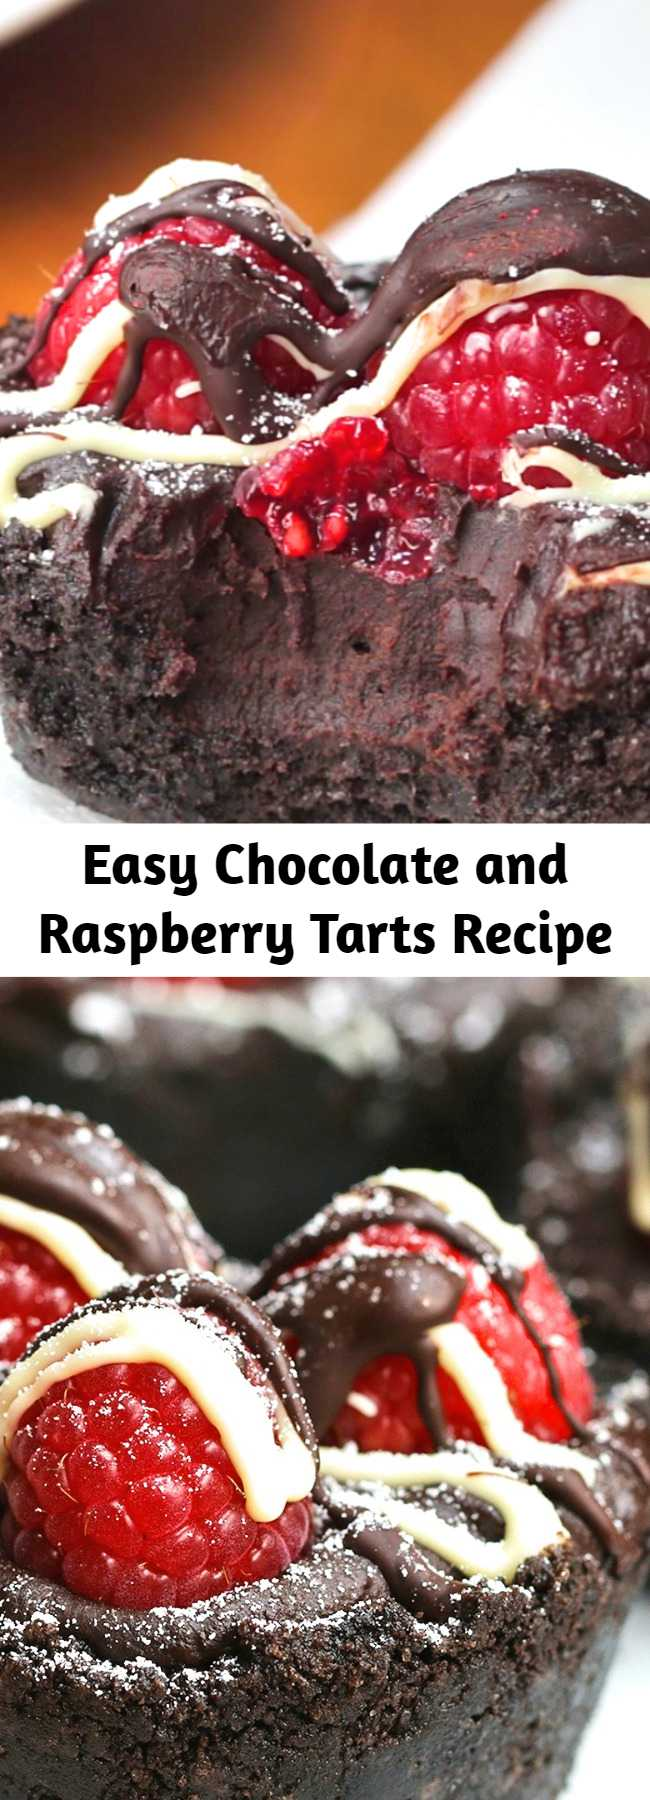 Easy Chocolate and Raspberry Tarts Recipe - This simple, decadent tart will keep overnight in the refrigerator (top with raspberries just before serving). Try it with vanilla ice cream or whipped cream.